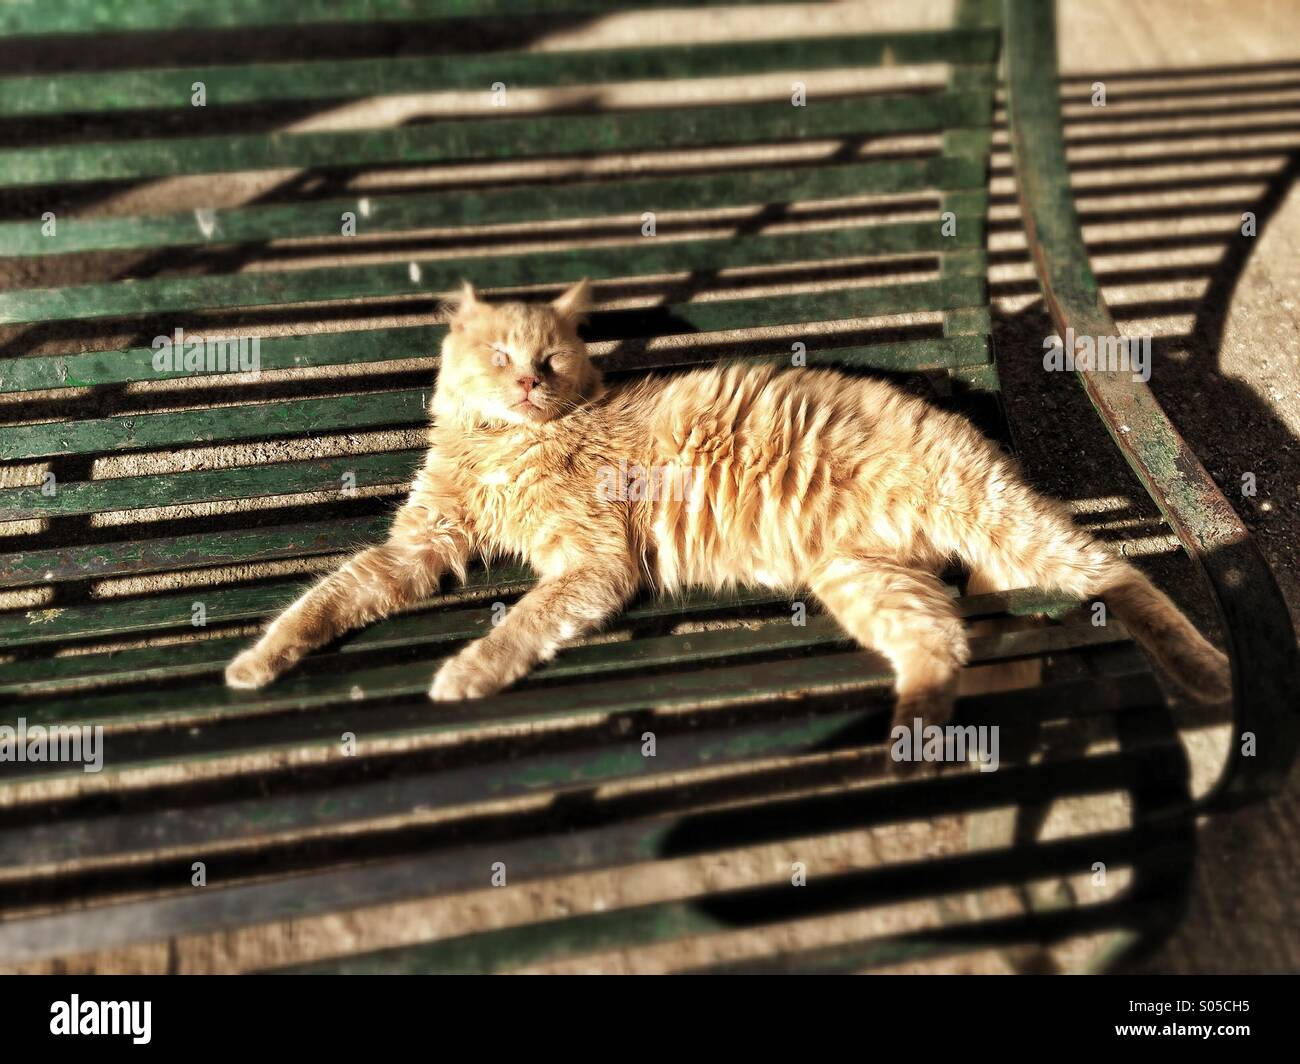 Feral cat basking in sun on public bench Stock Photo